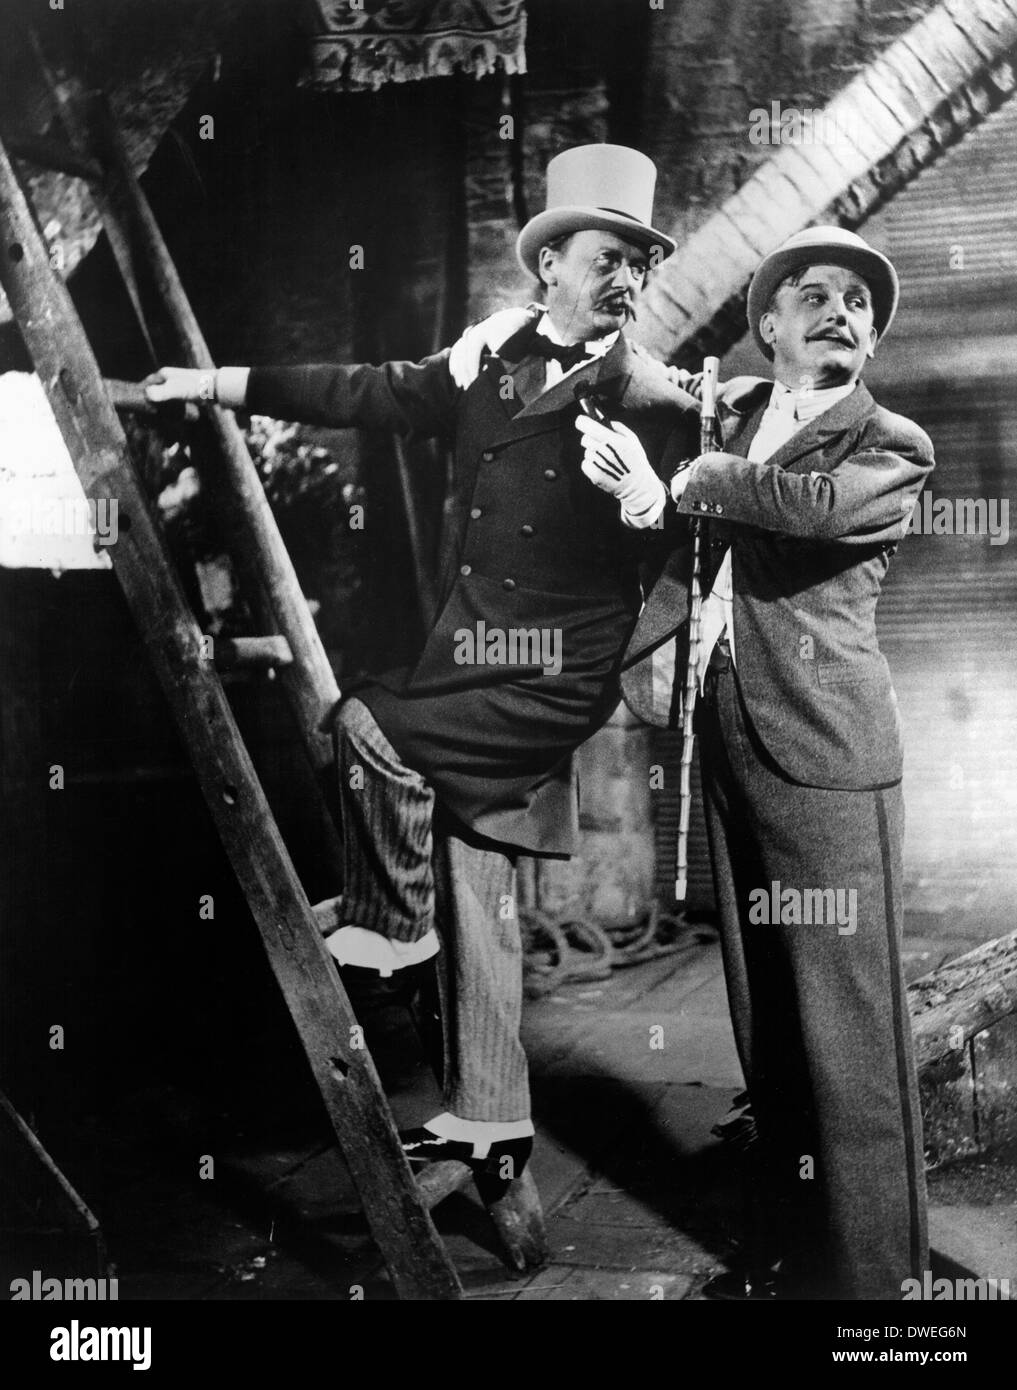 Reinhold Schunzel, and Rudolf Forster, on-set of the Film, 'The Threepenny Opera' Directed by  G. W. Pabst, 1931 - Stock Image